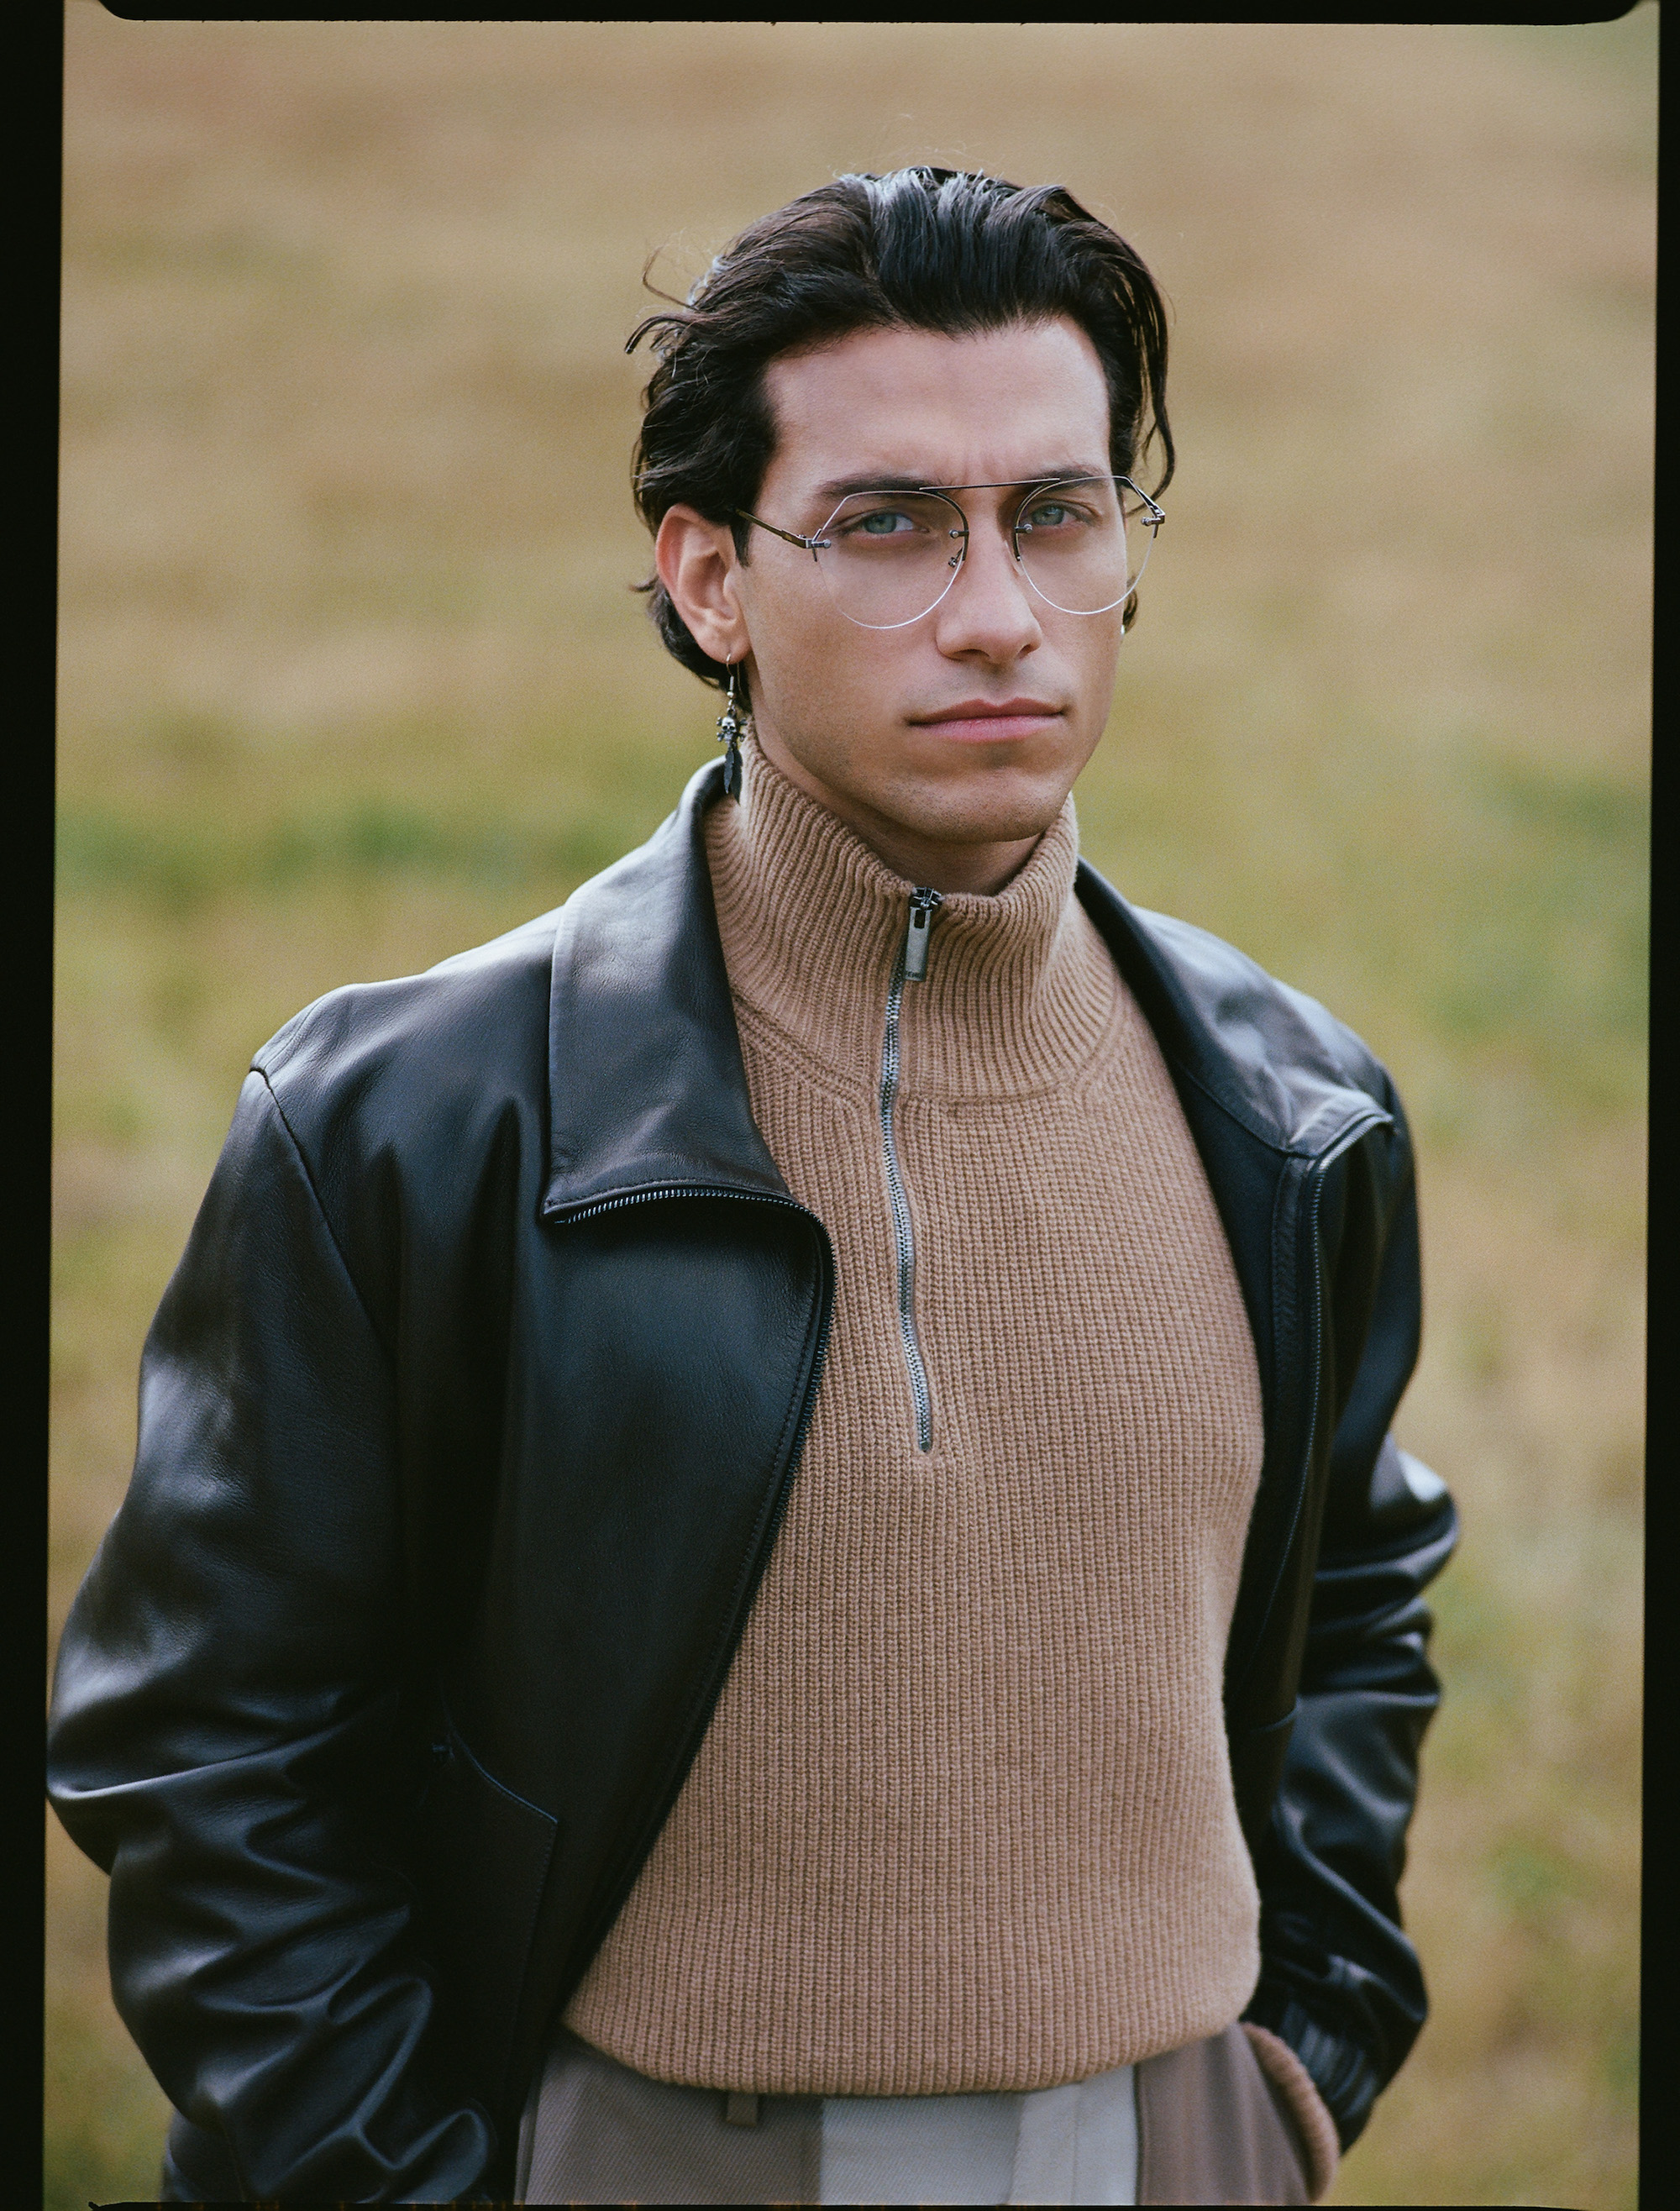 Rob Raco stars in Fendi's AW19 men's eyewear collection leather jacket